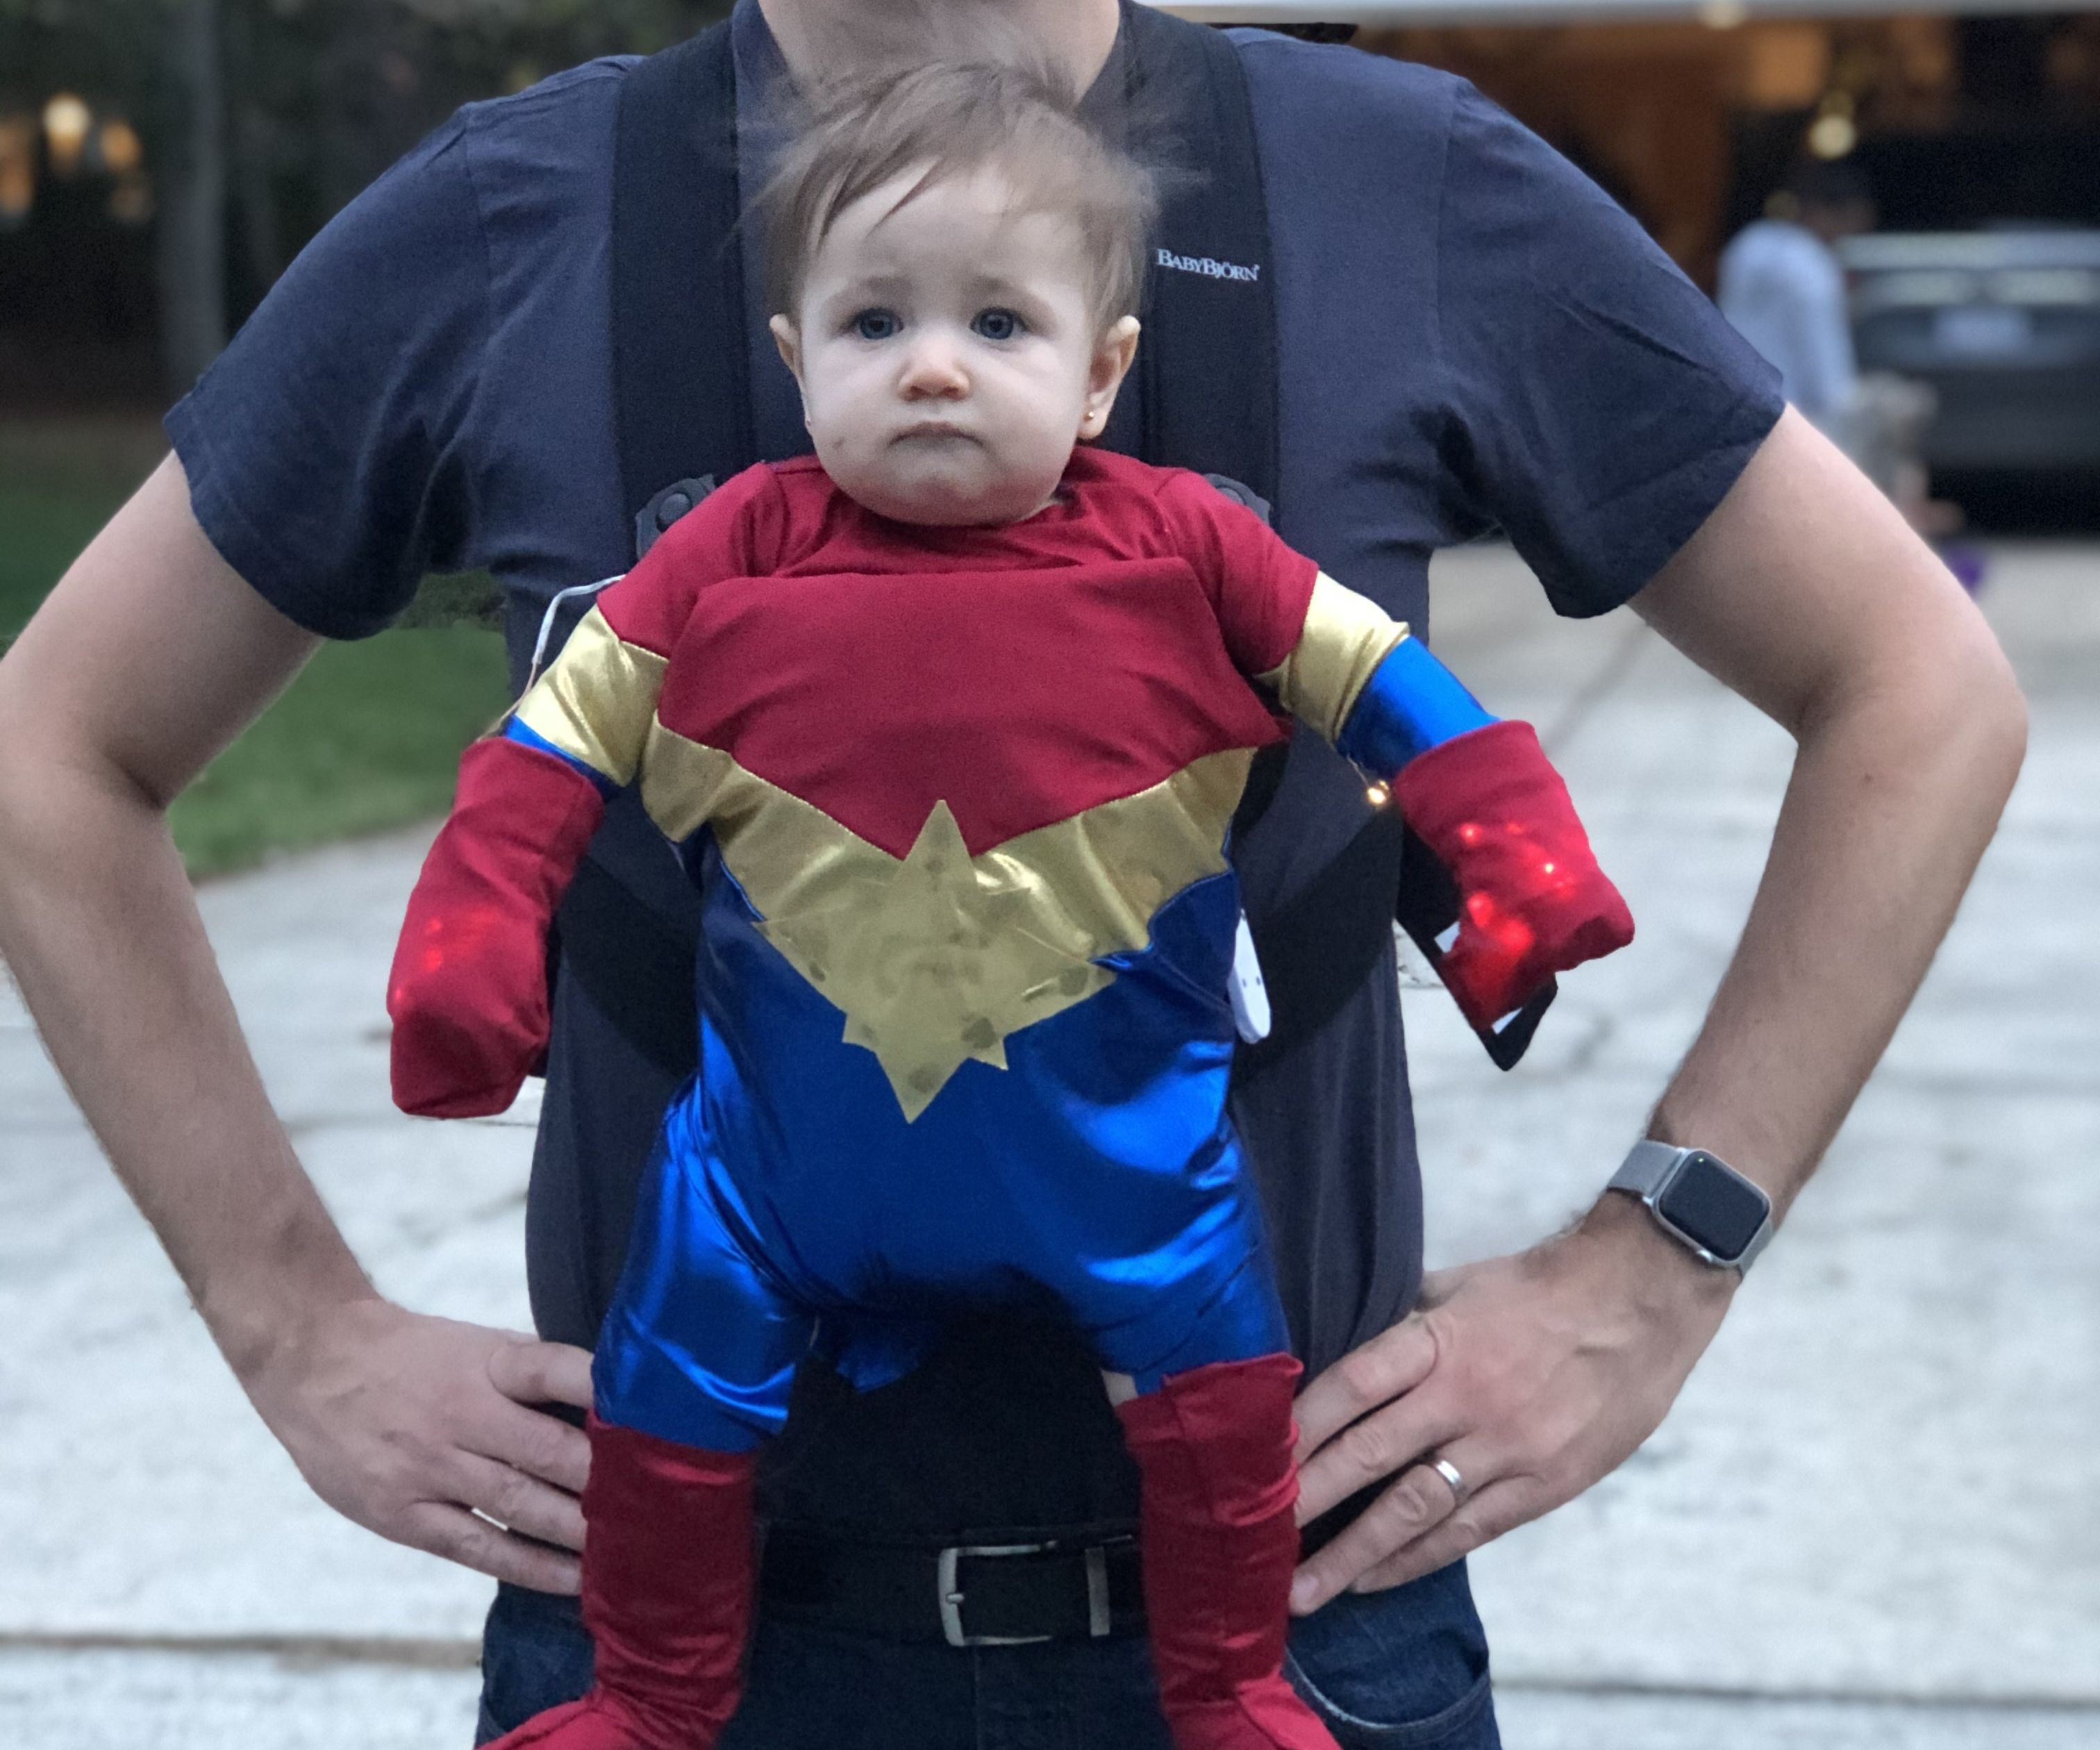 Little Ms Captain Marvel Costume 4 Steps Instructables If you're a diehard avengers fan, you'll love our amazing. little ms captain marvel costume 4